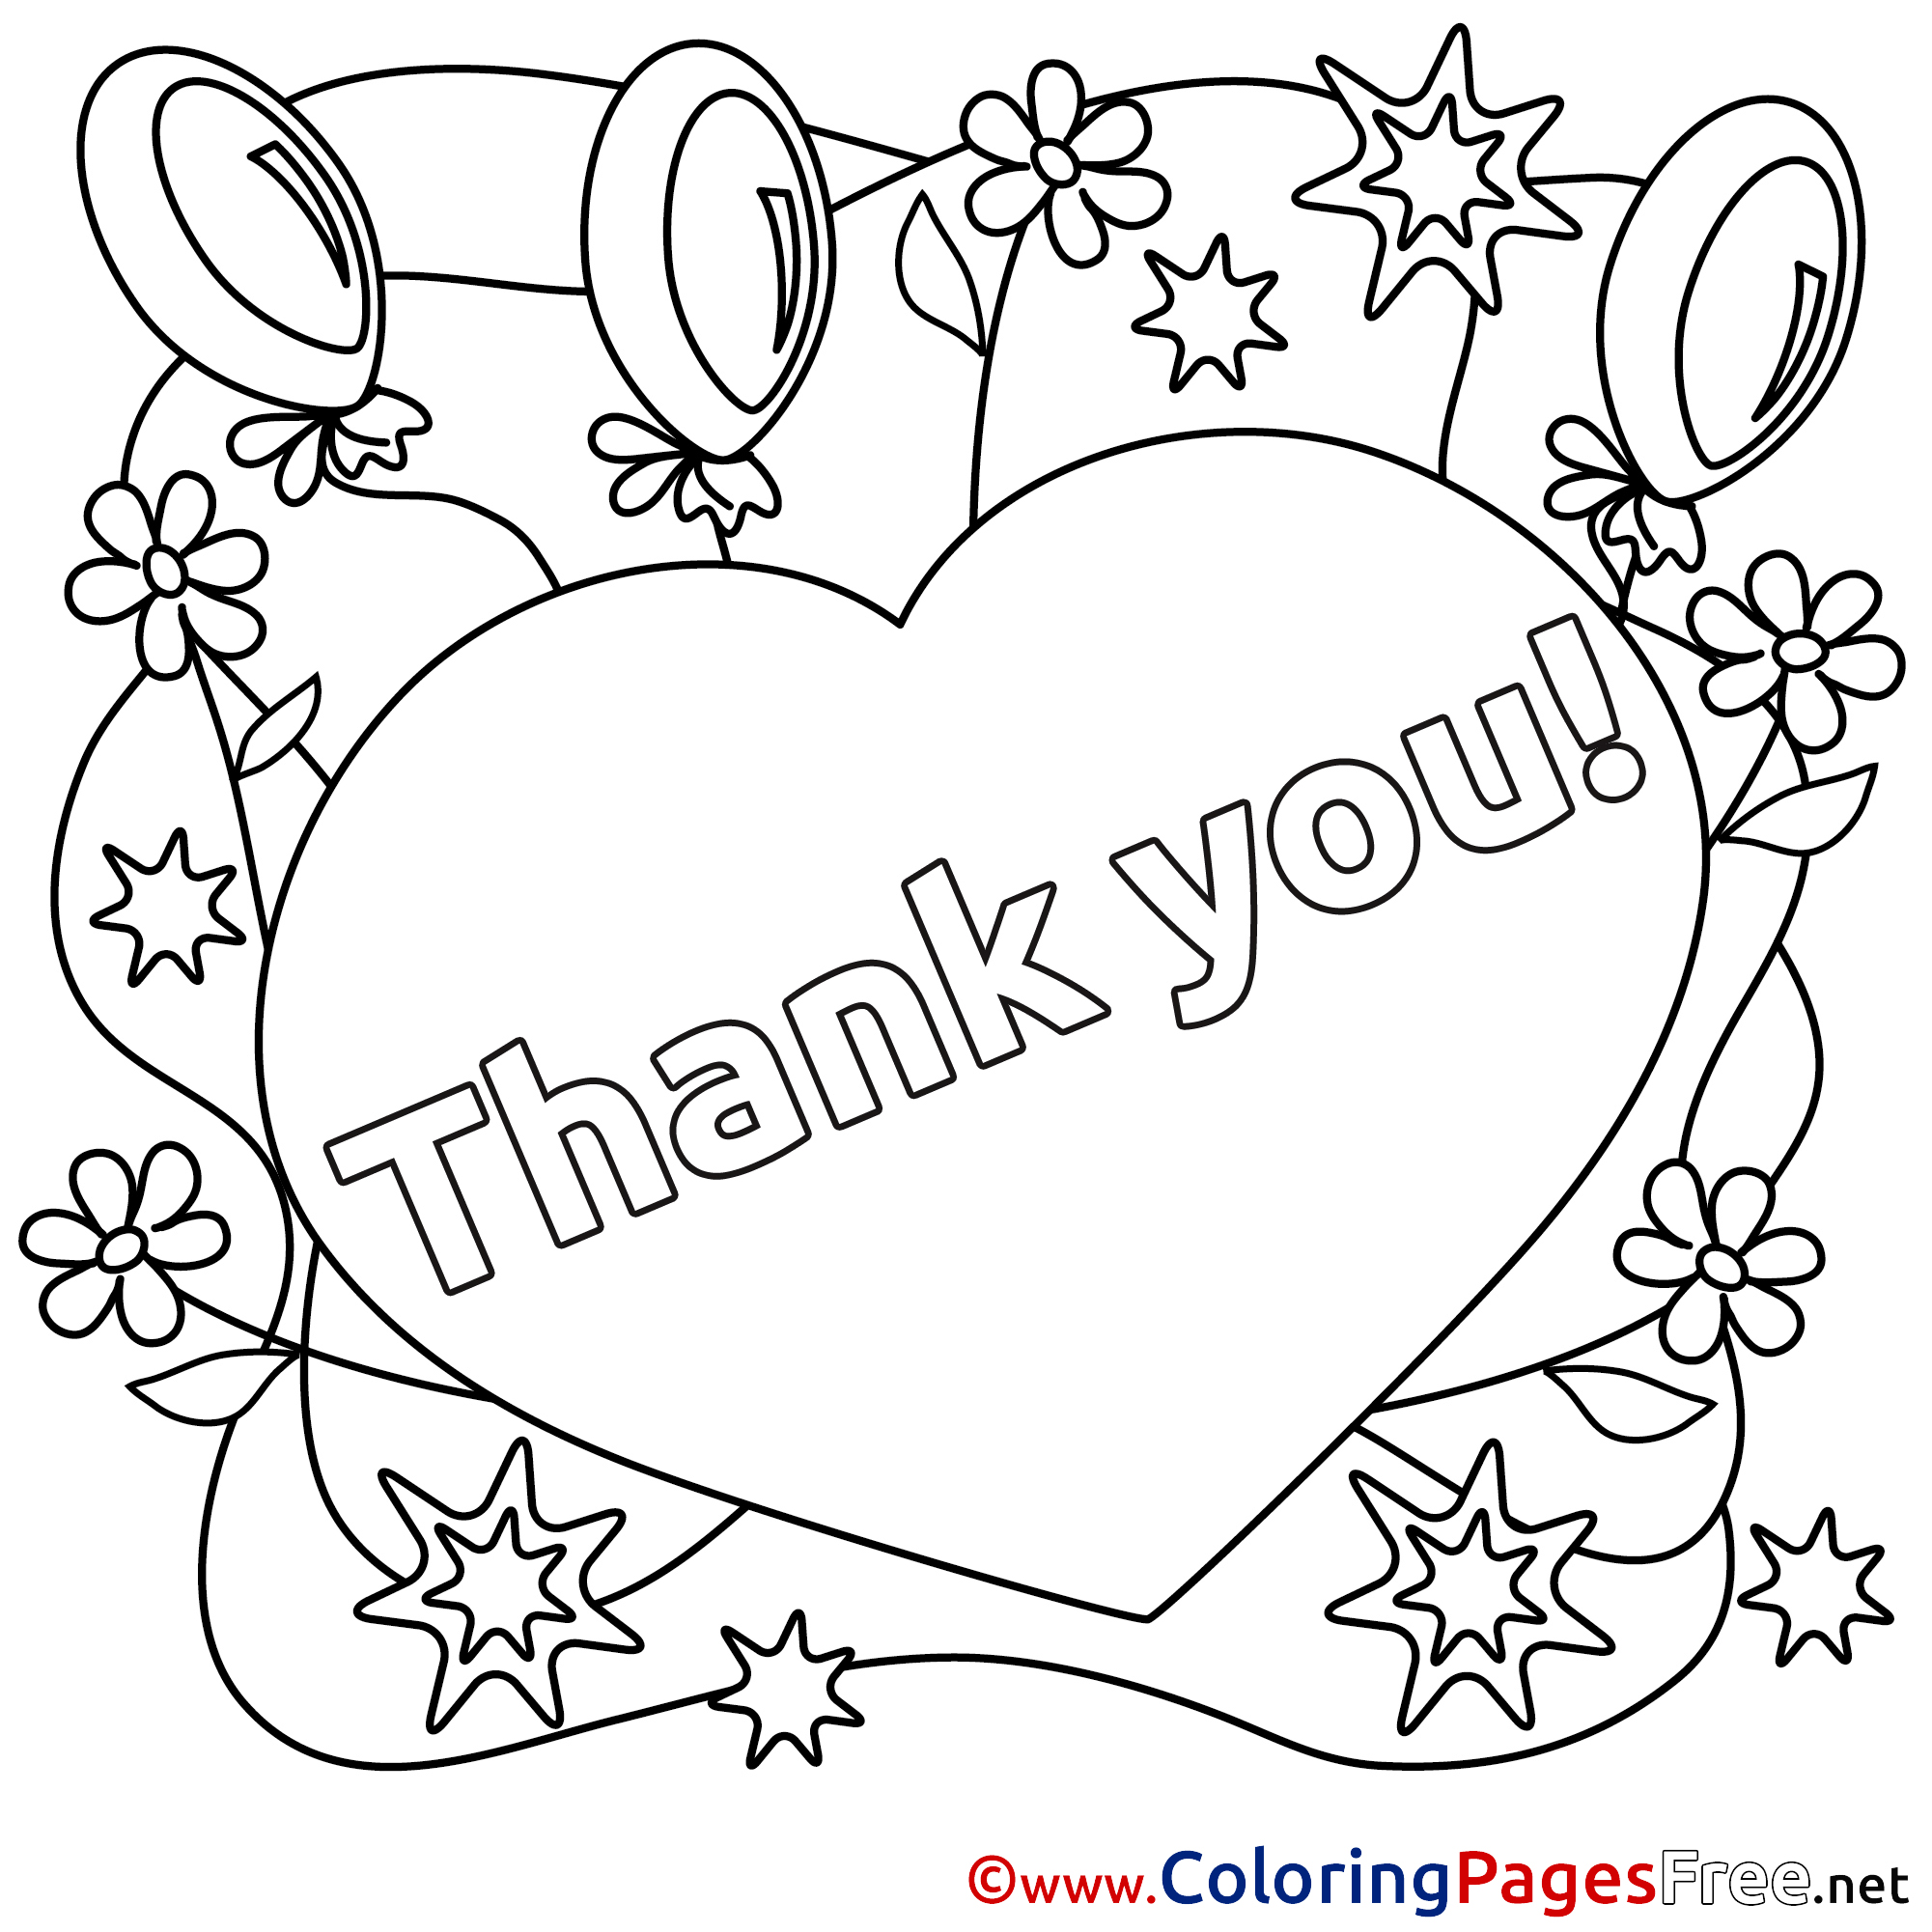 thank you coloring sheets free printable thank you coloring pages coloring pages coloring sheets thank you